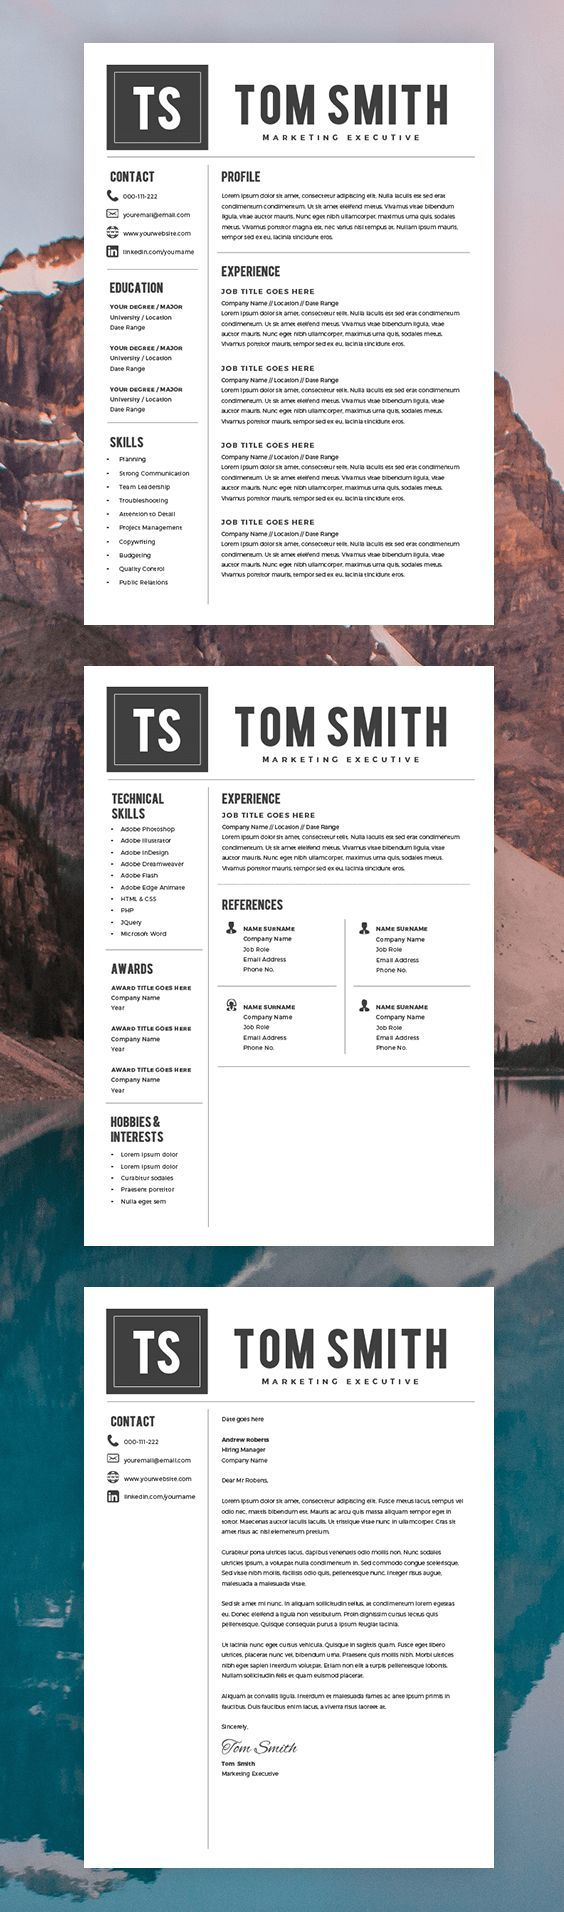 Modern resume template free cover letter cv template ms word modern resume template free cover letter cv template ms word on mac yelopaper Choice Image